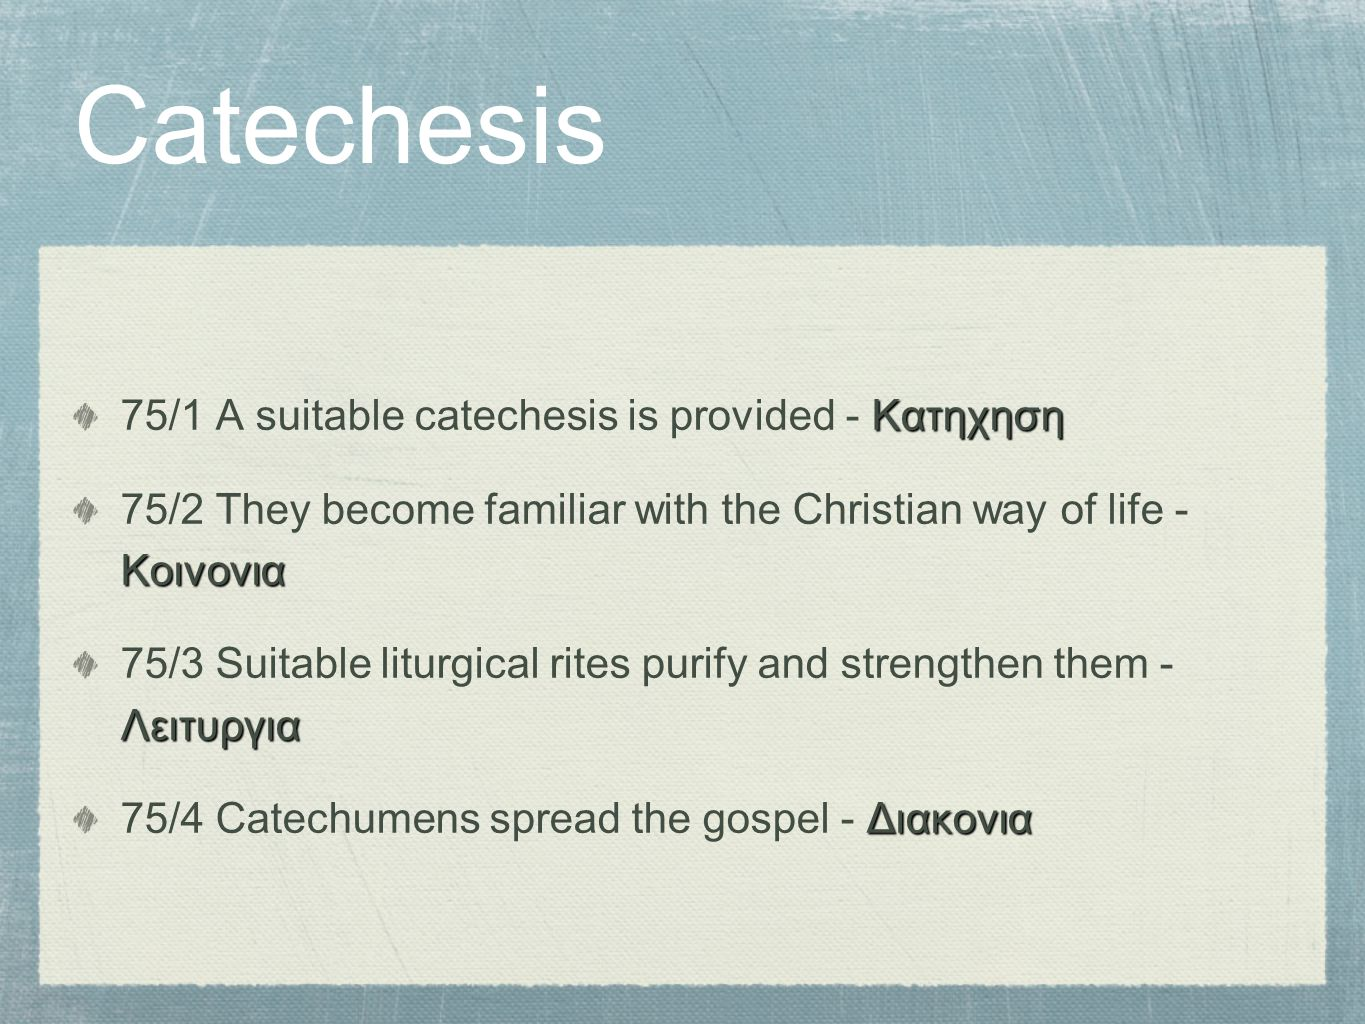 Catechesis Κατηχηση 75/1 A suitable catechesis is provided - Κατηχηση Κοινονια 75/2 They become familiar with the Christian way of life - Κοινονια Λειτυργια 75/3 Suitable liturgical rites purify and strengthen them - Λειτυργια Διακονια 75/4 Catechumens spread the gospel - Διακονια